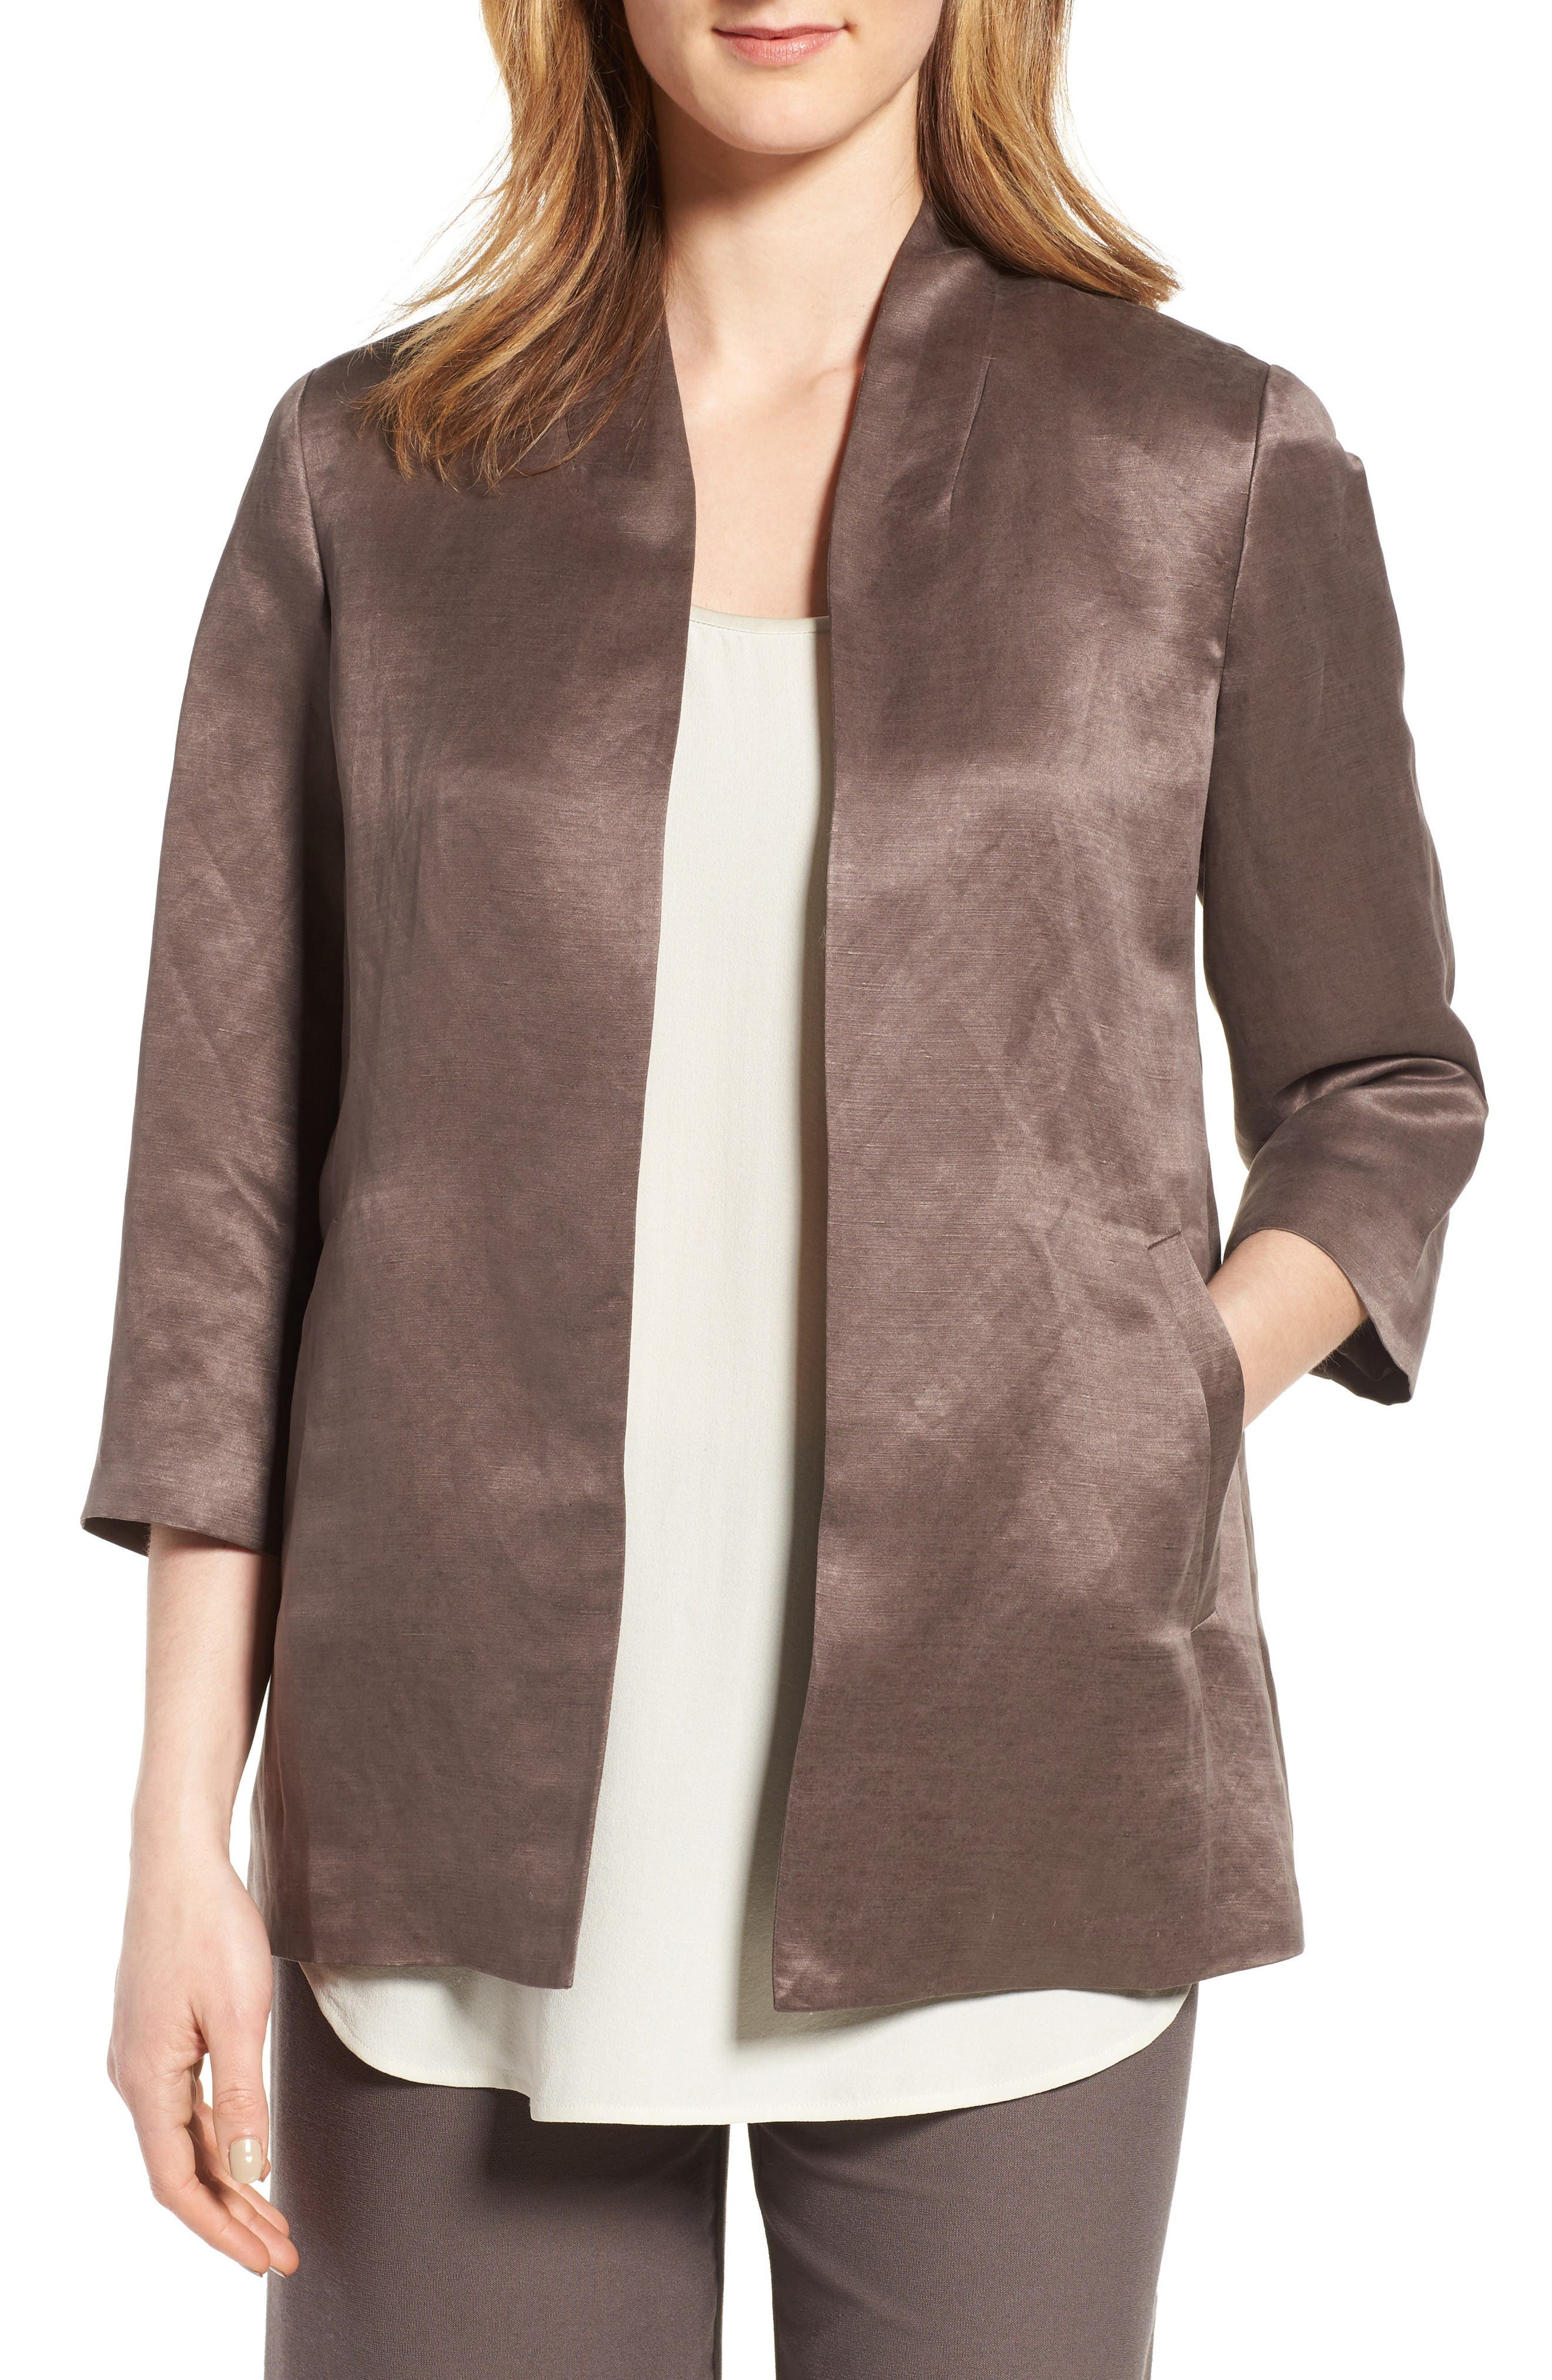 Alternate Image 1 Selected - Eileen Fisher Organic Linen & Silk Jacket (Regular & Petite)